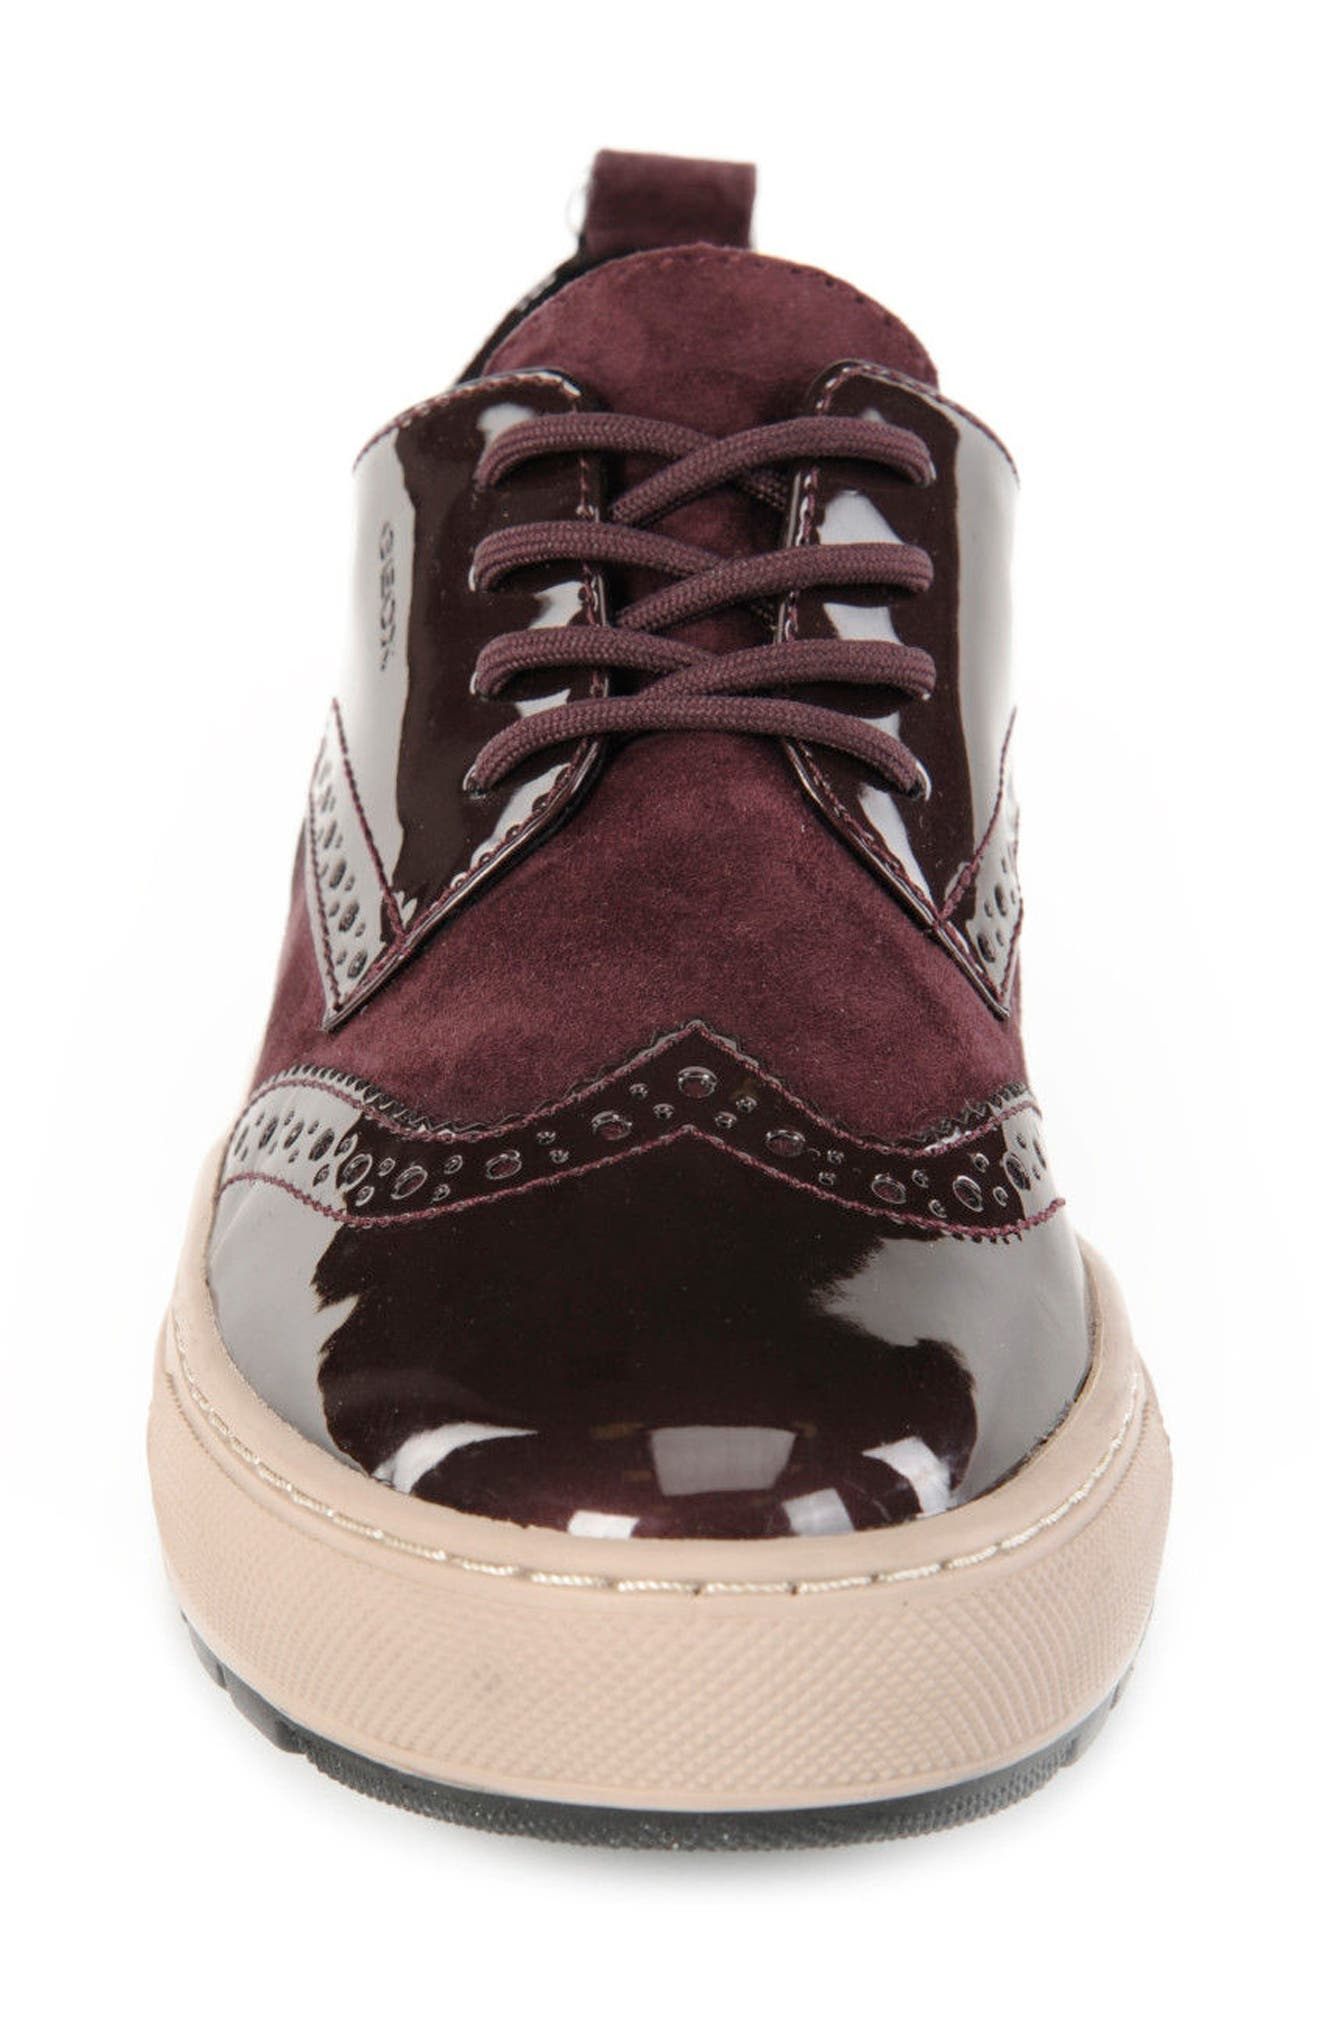 Breeda Oxford Sneaker,                             Alternate thumbnail 4, color,                             Prune Leather